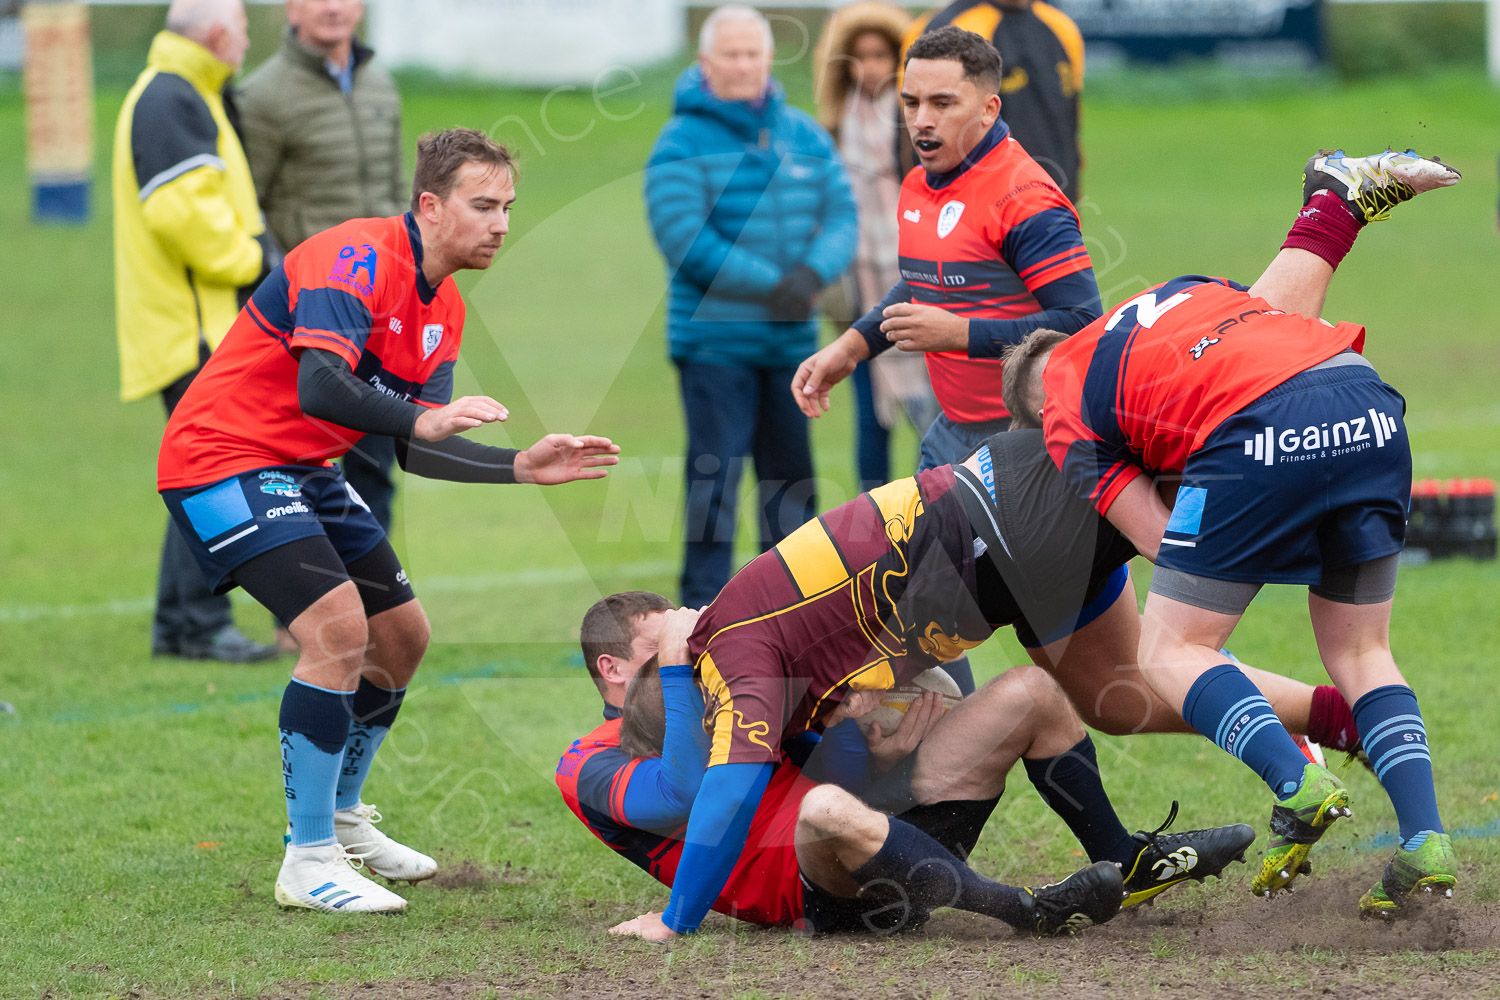 20181027 Amp Extras vs St Neots 2nd XV #2179